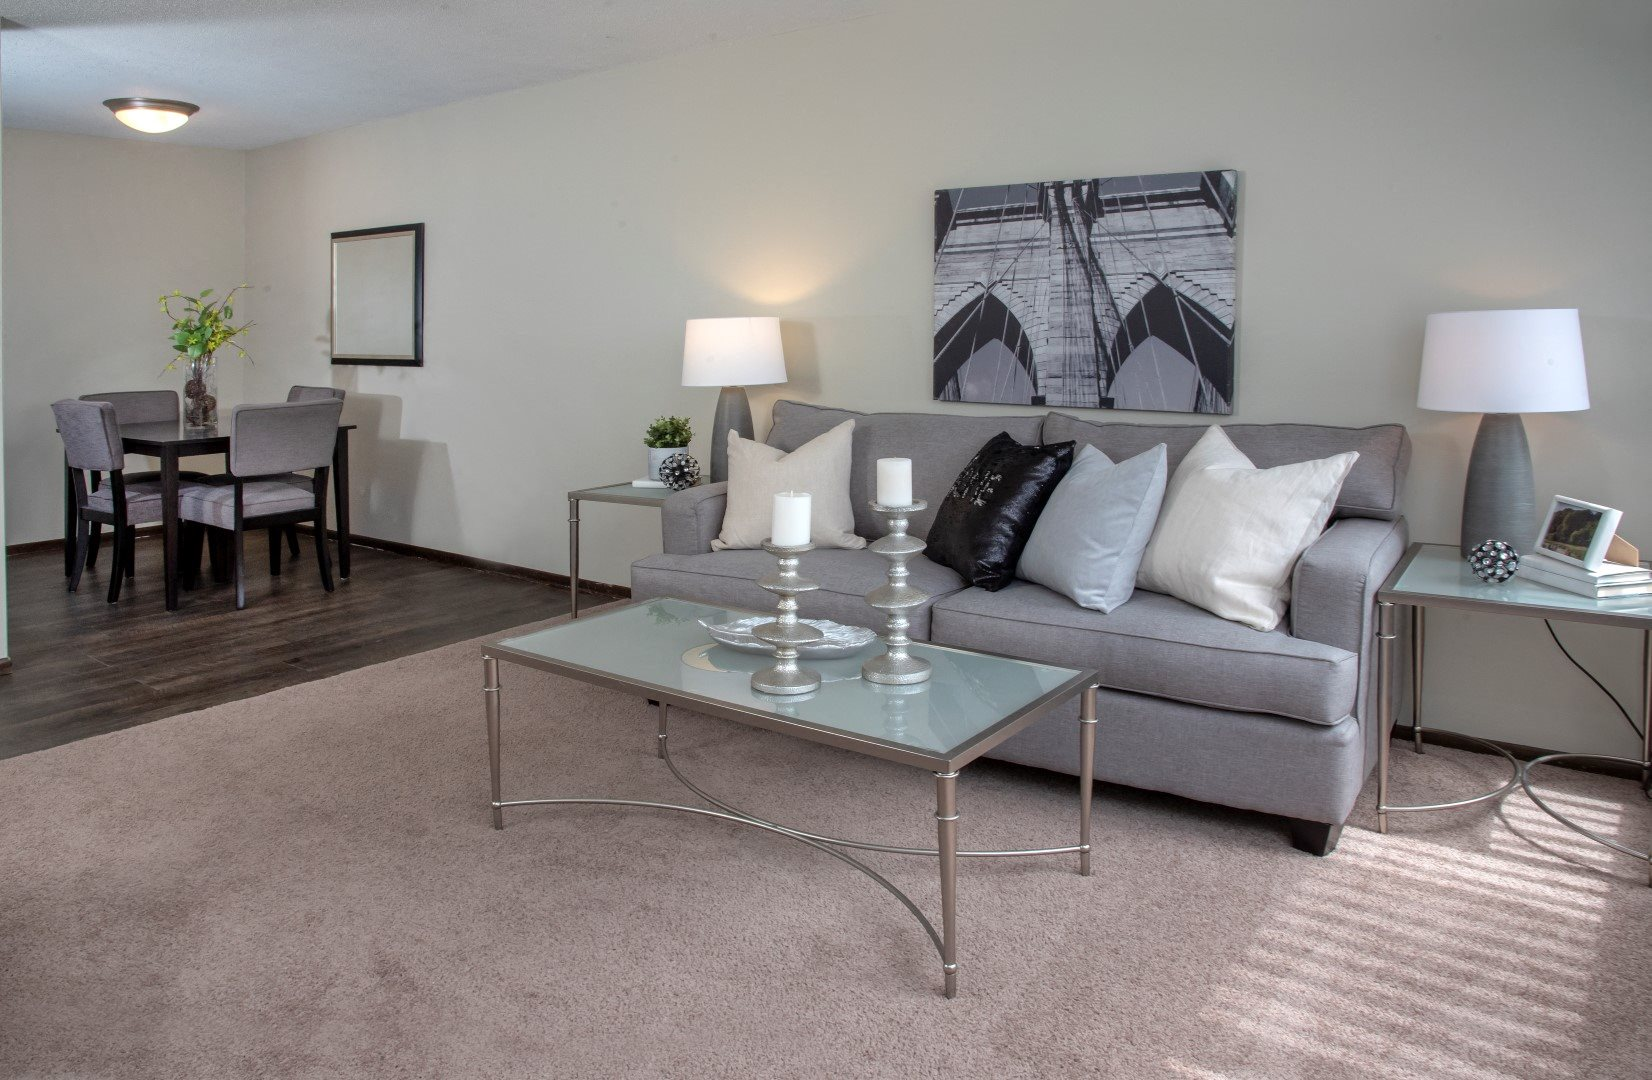 Spacious Open Floor Plan Connecting Dining and Living Room at Apartment in Minneapolis, MN